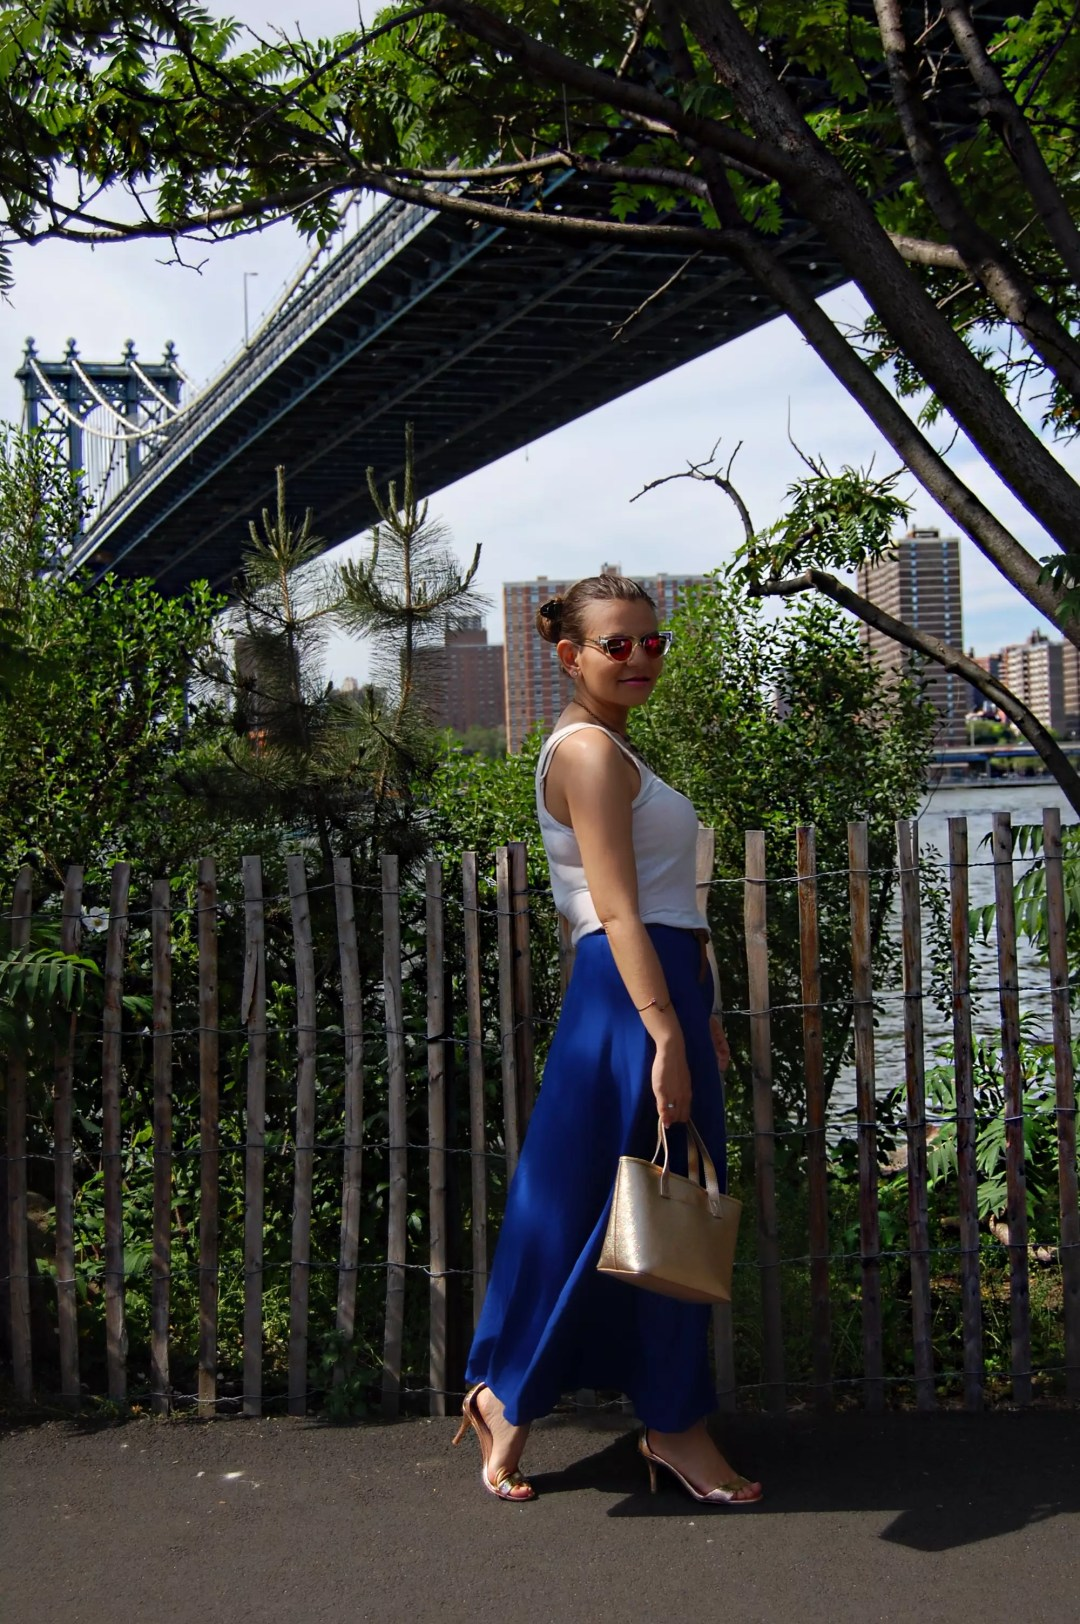 new_york_guide_brooklyn_dumbo_alley_girl4